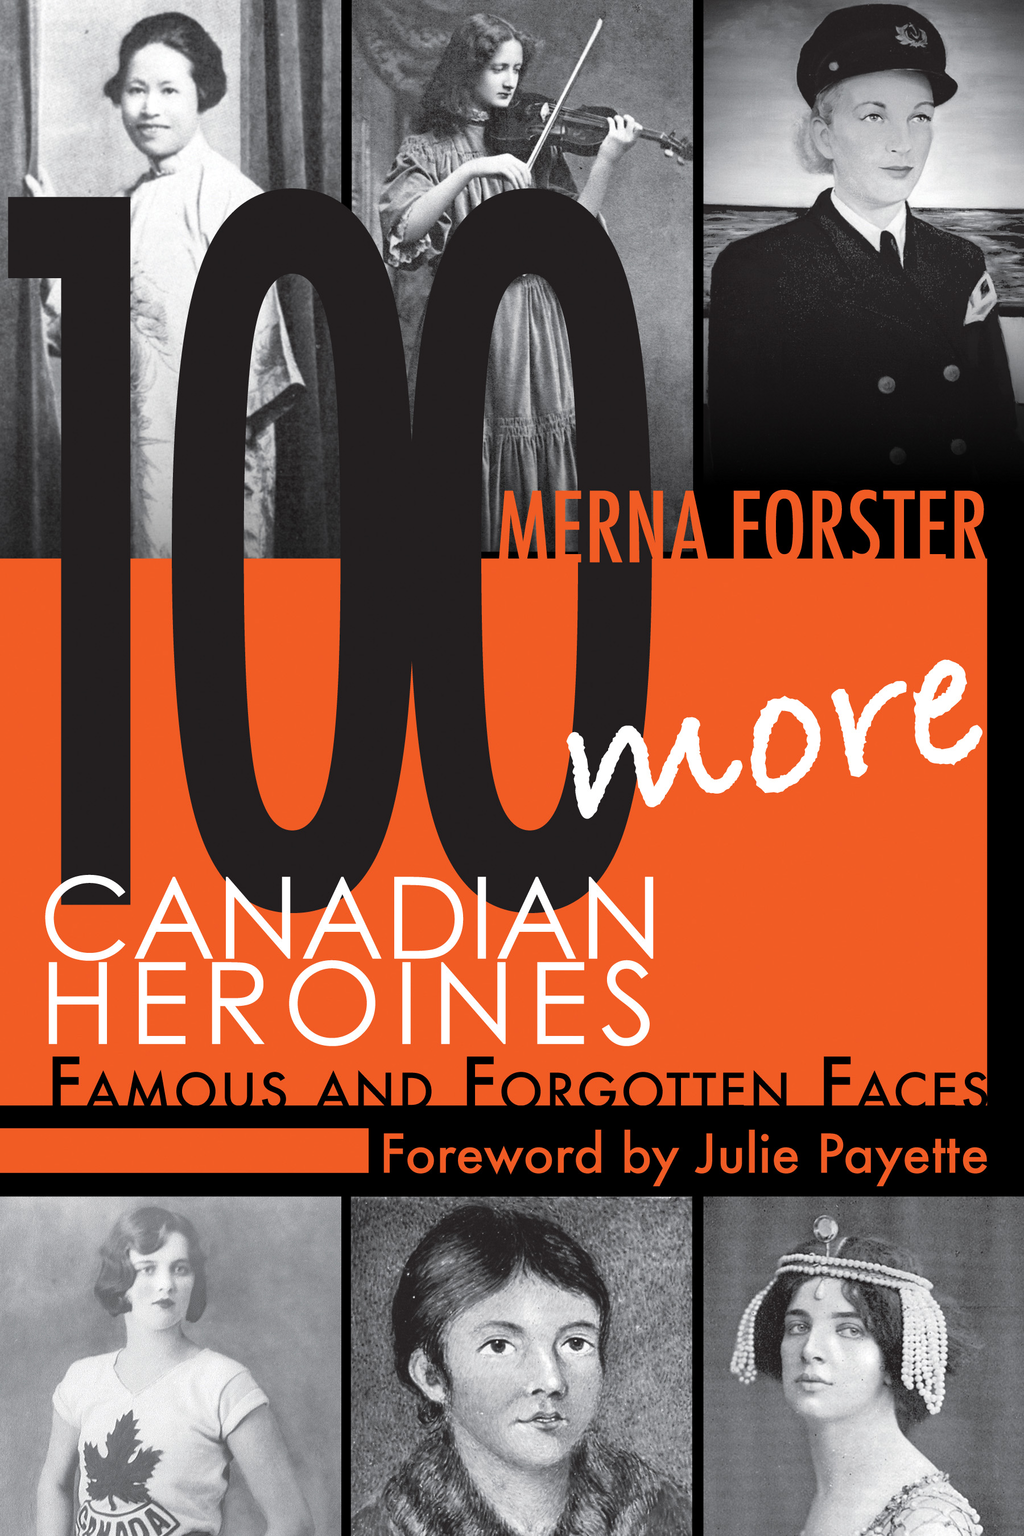 100 More Canadian Heroines By: Merna Forster